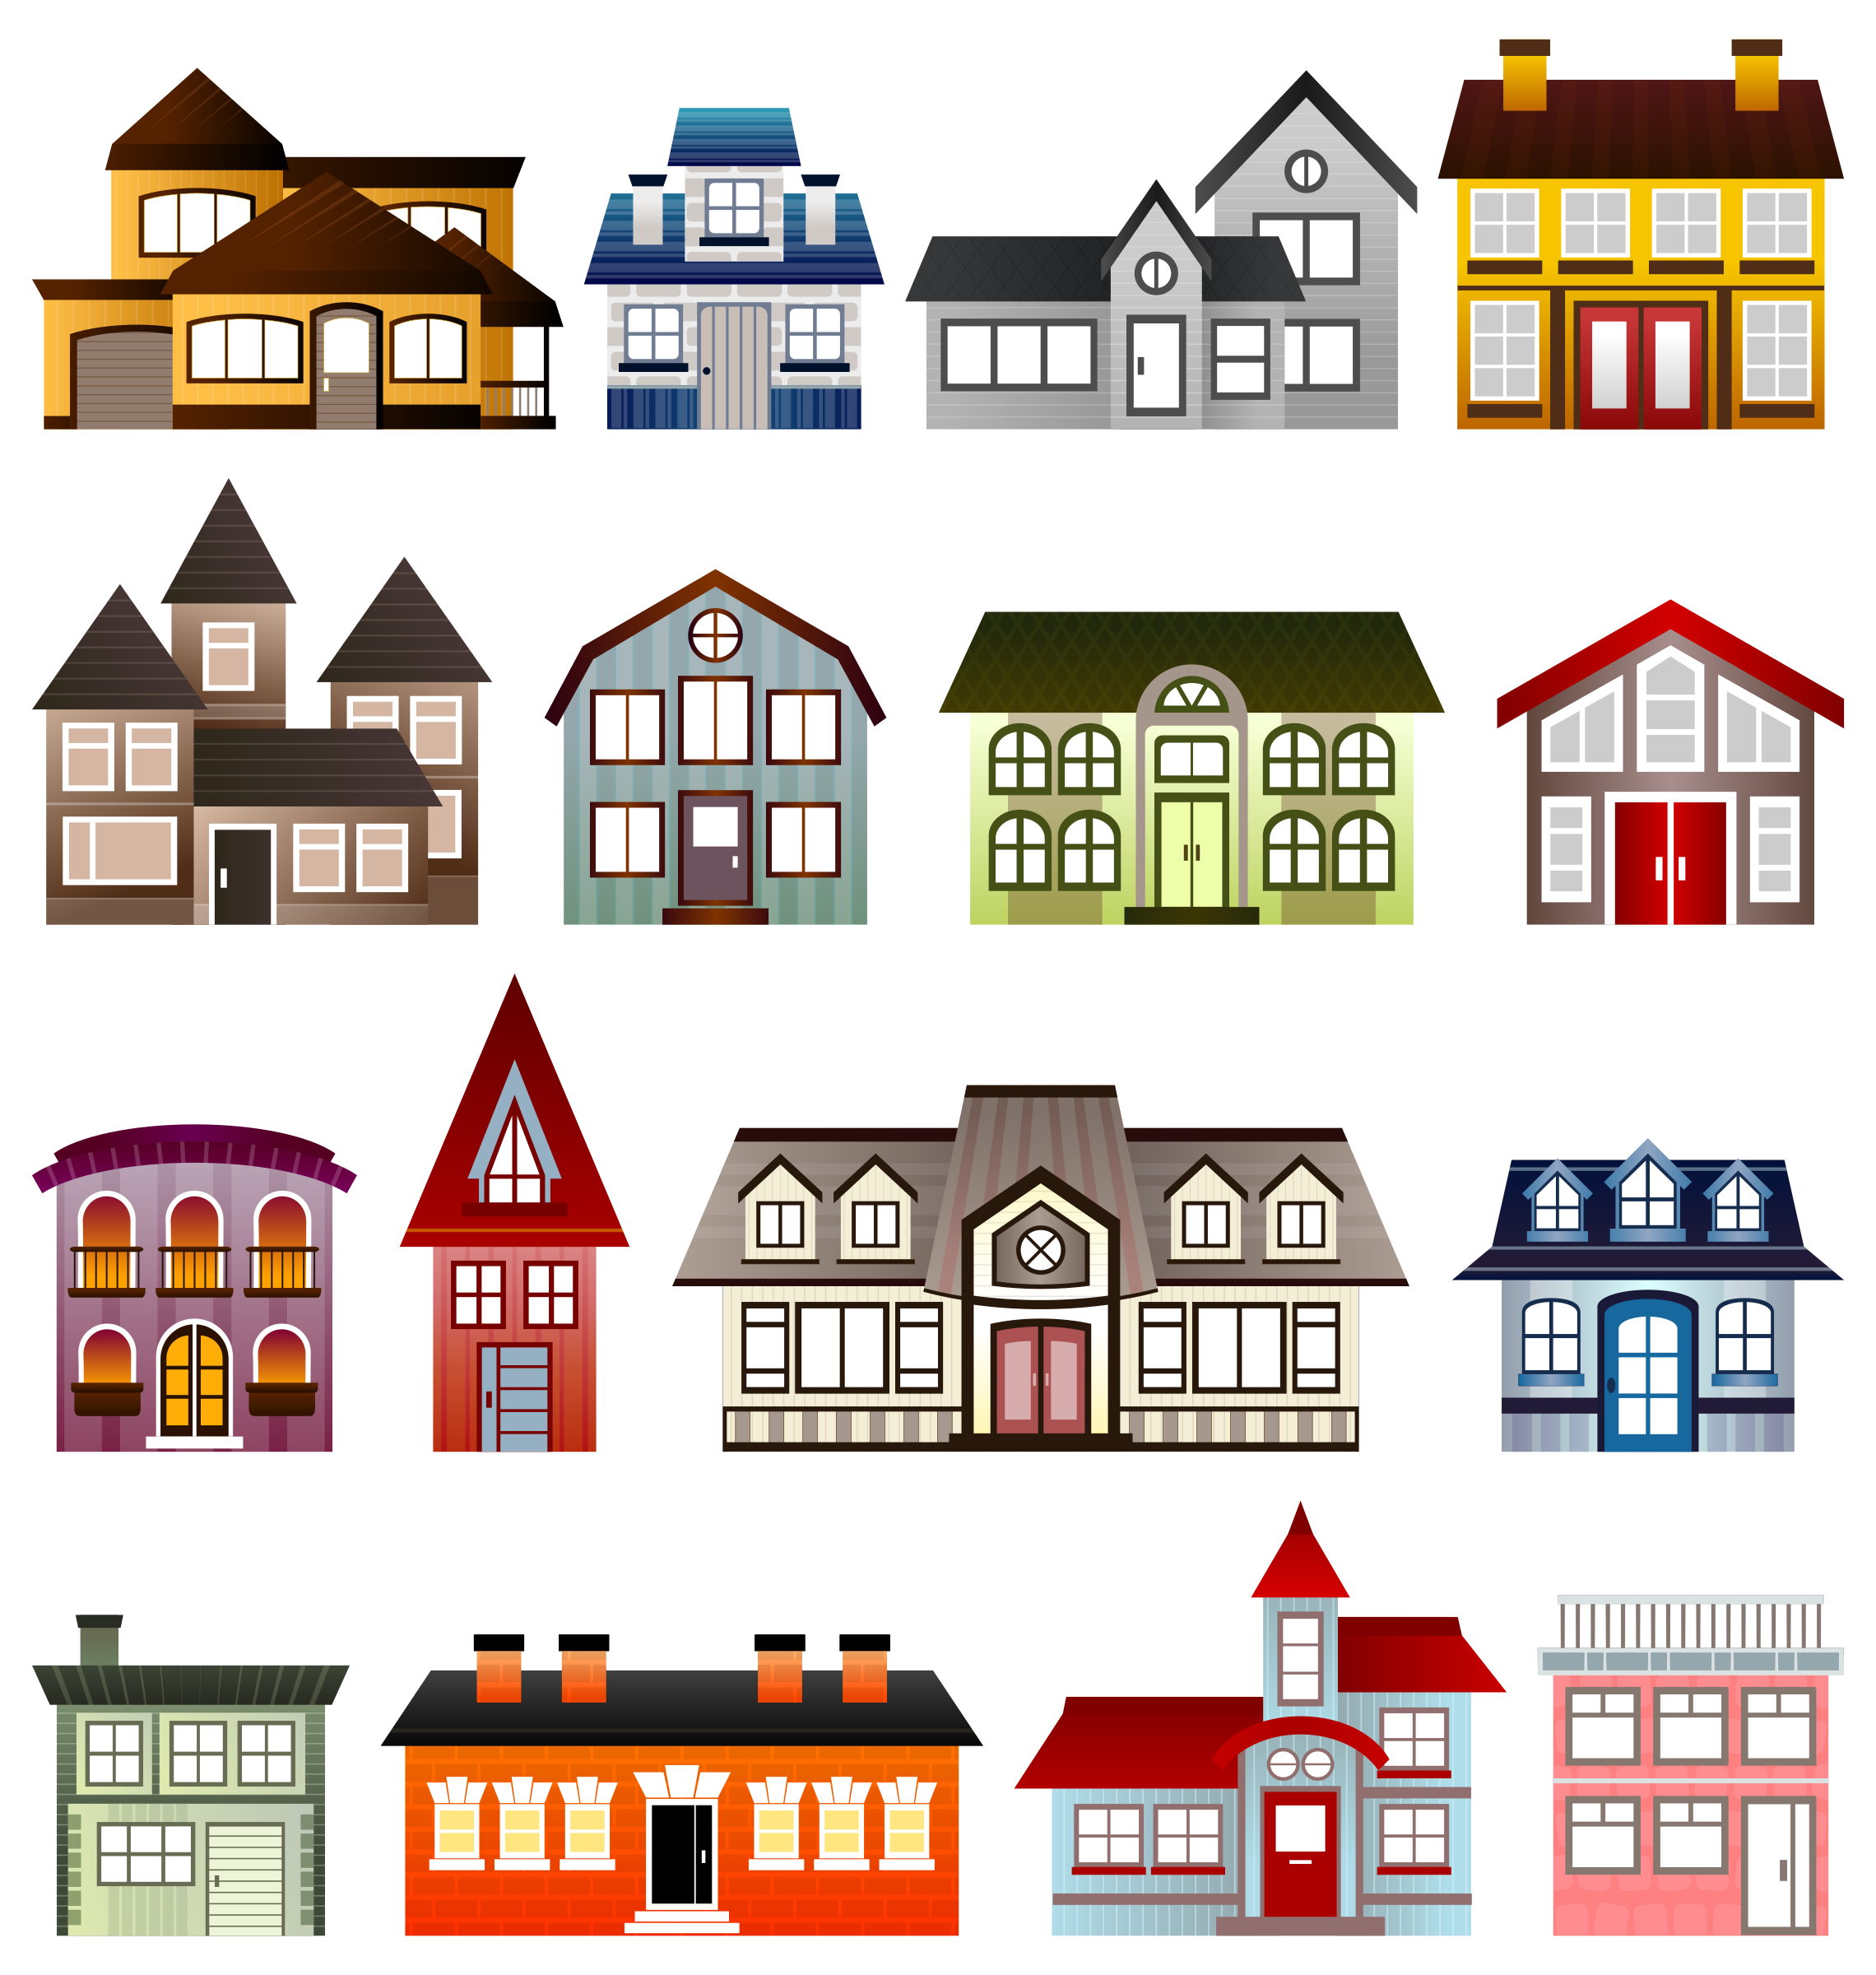 house-clipart-Simple-Houses.png